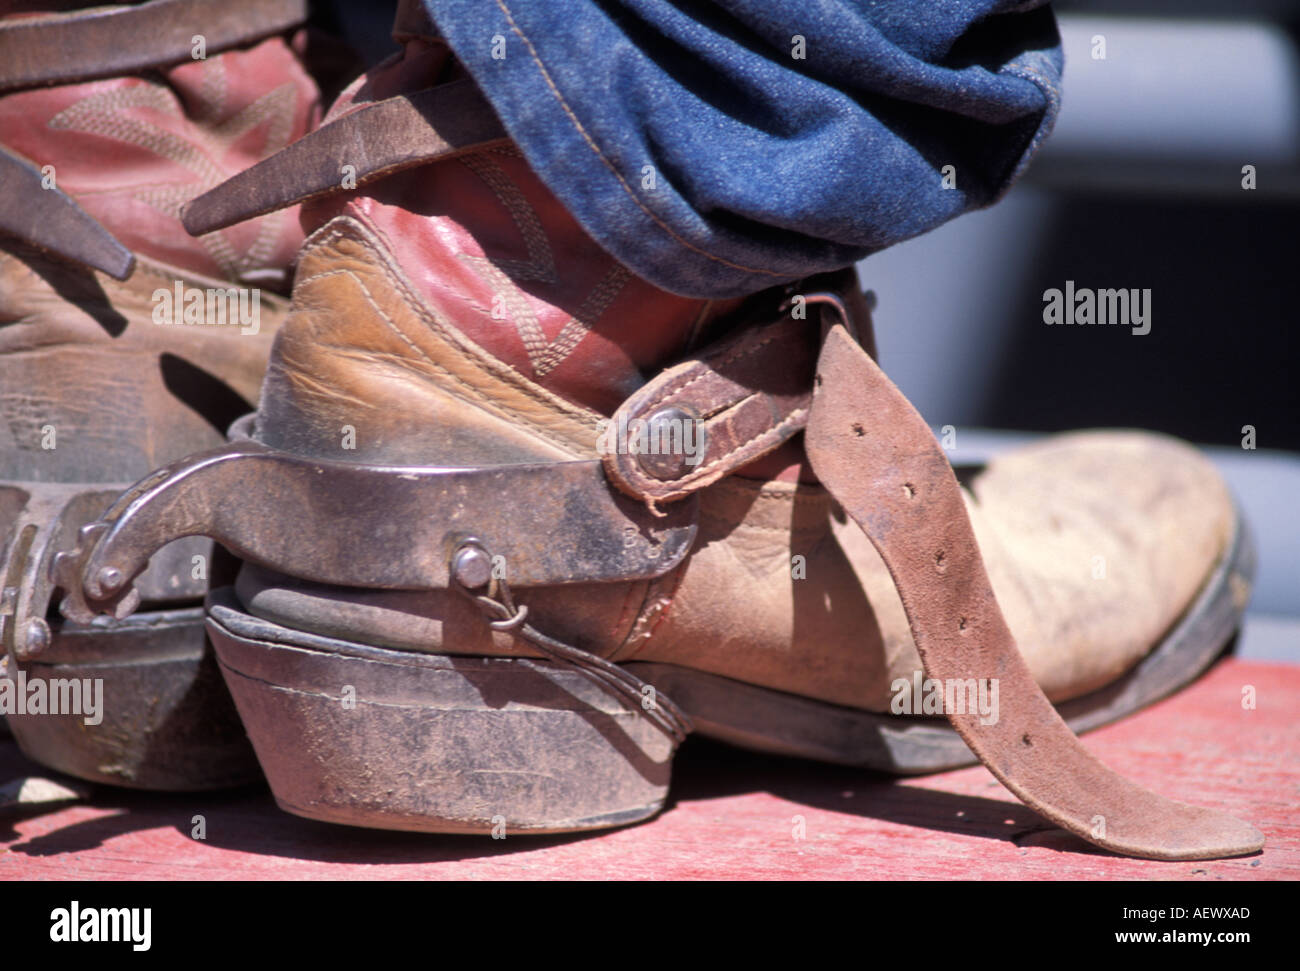 cowboy boots with spurs used by a cowboy for riding bucking ...